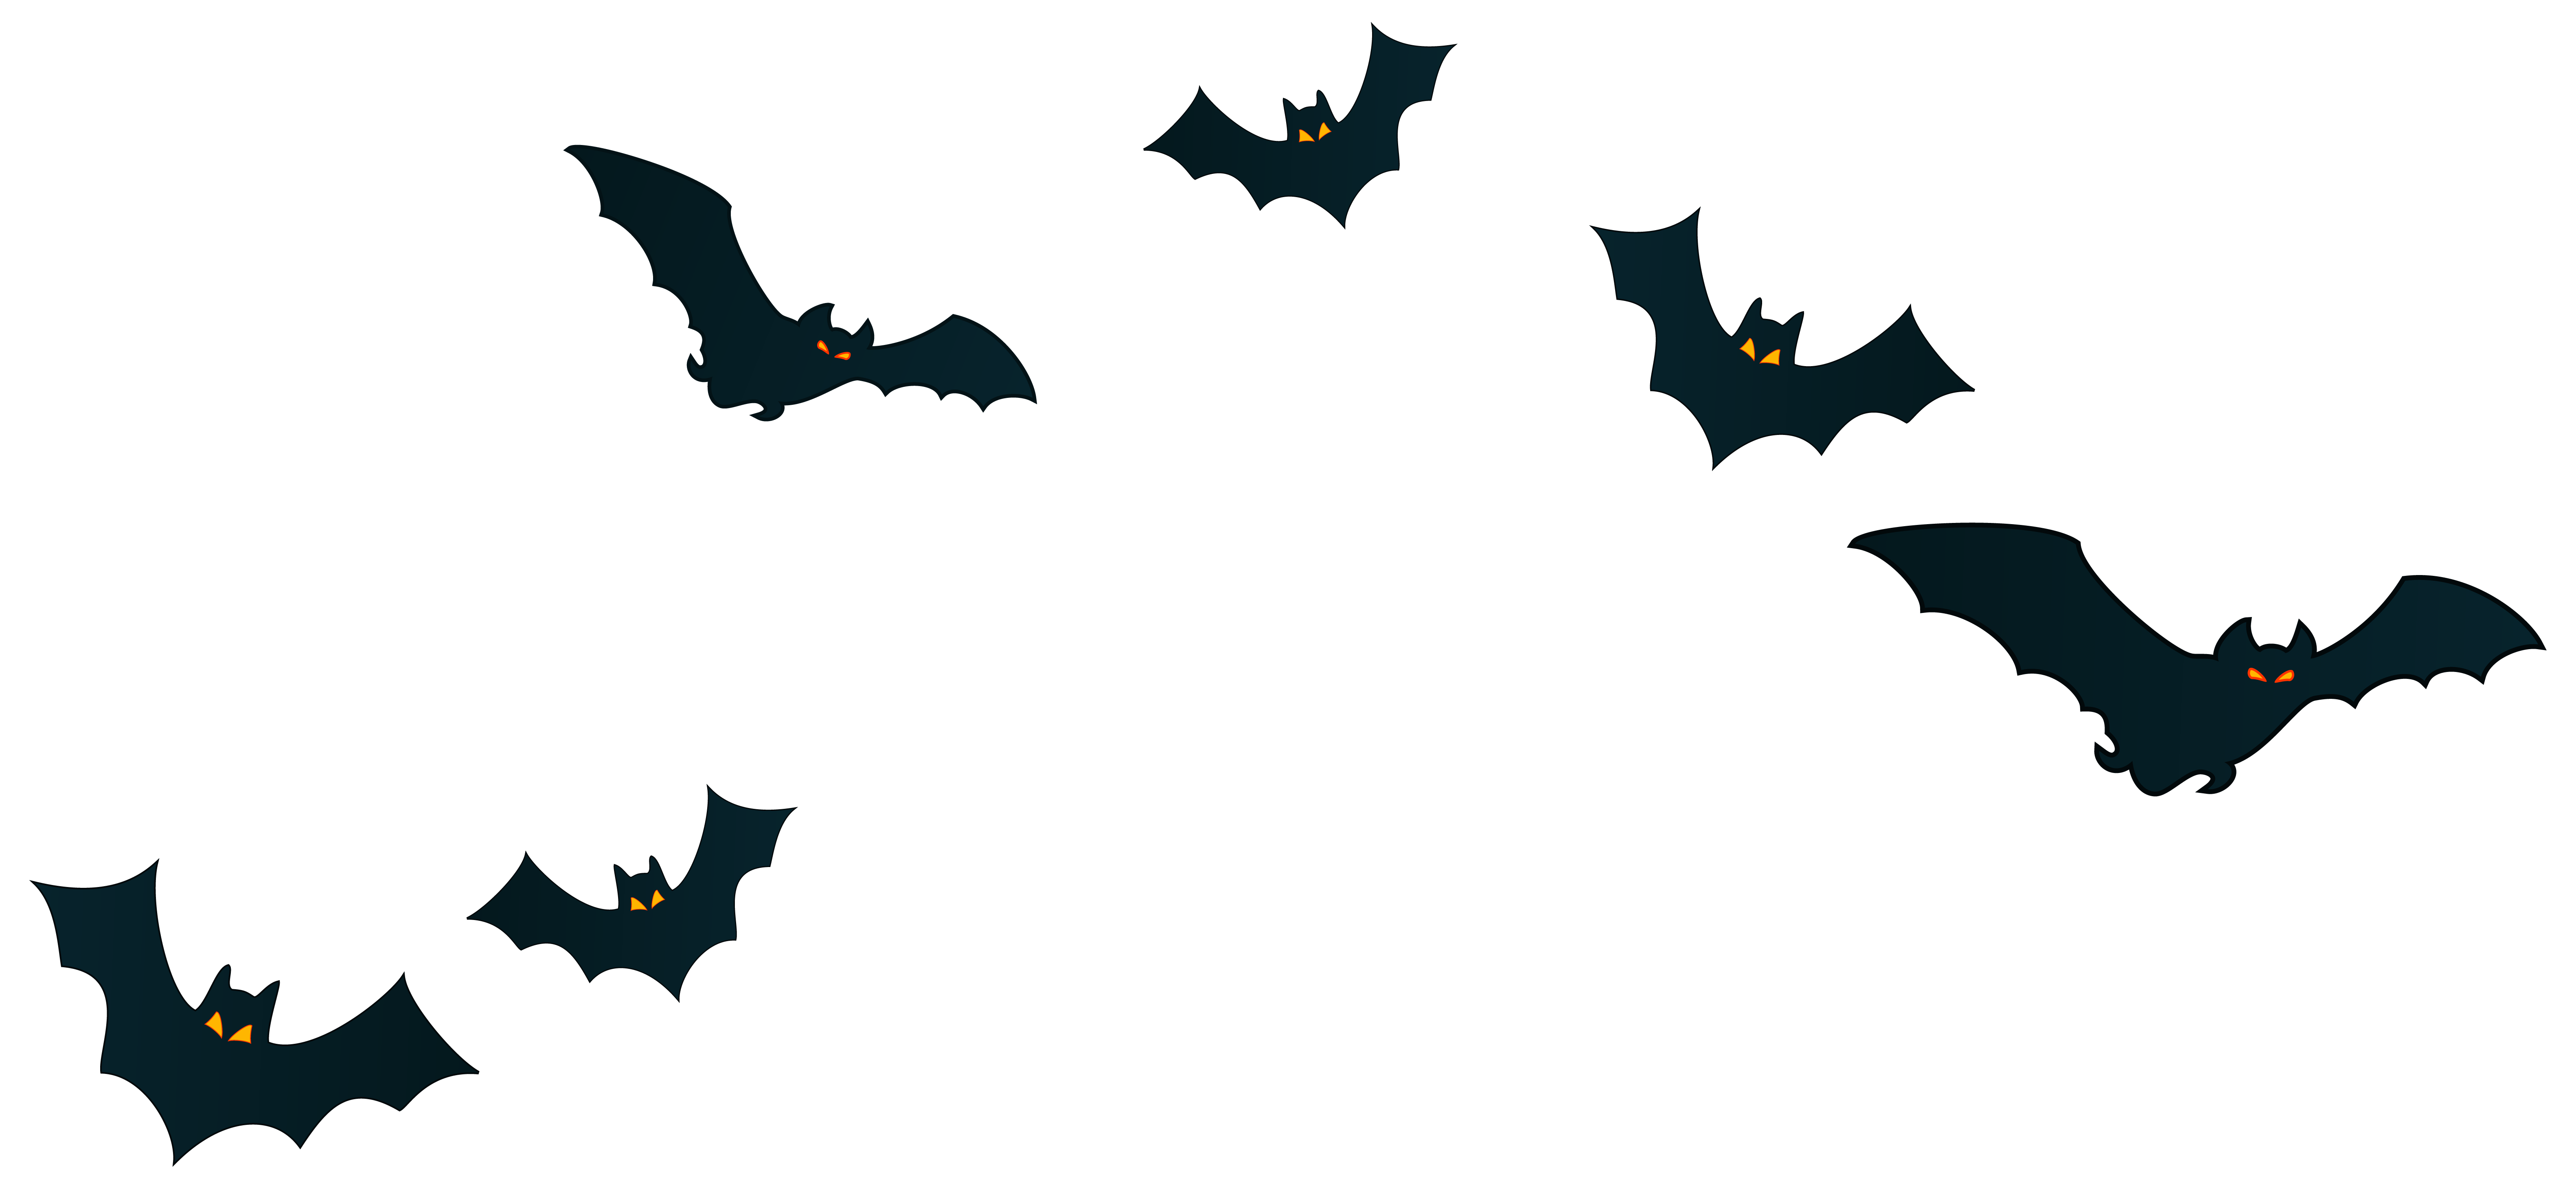 Bat clipart transparent background. Halloween bats decor png